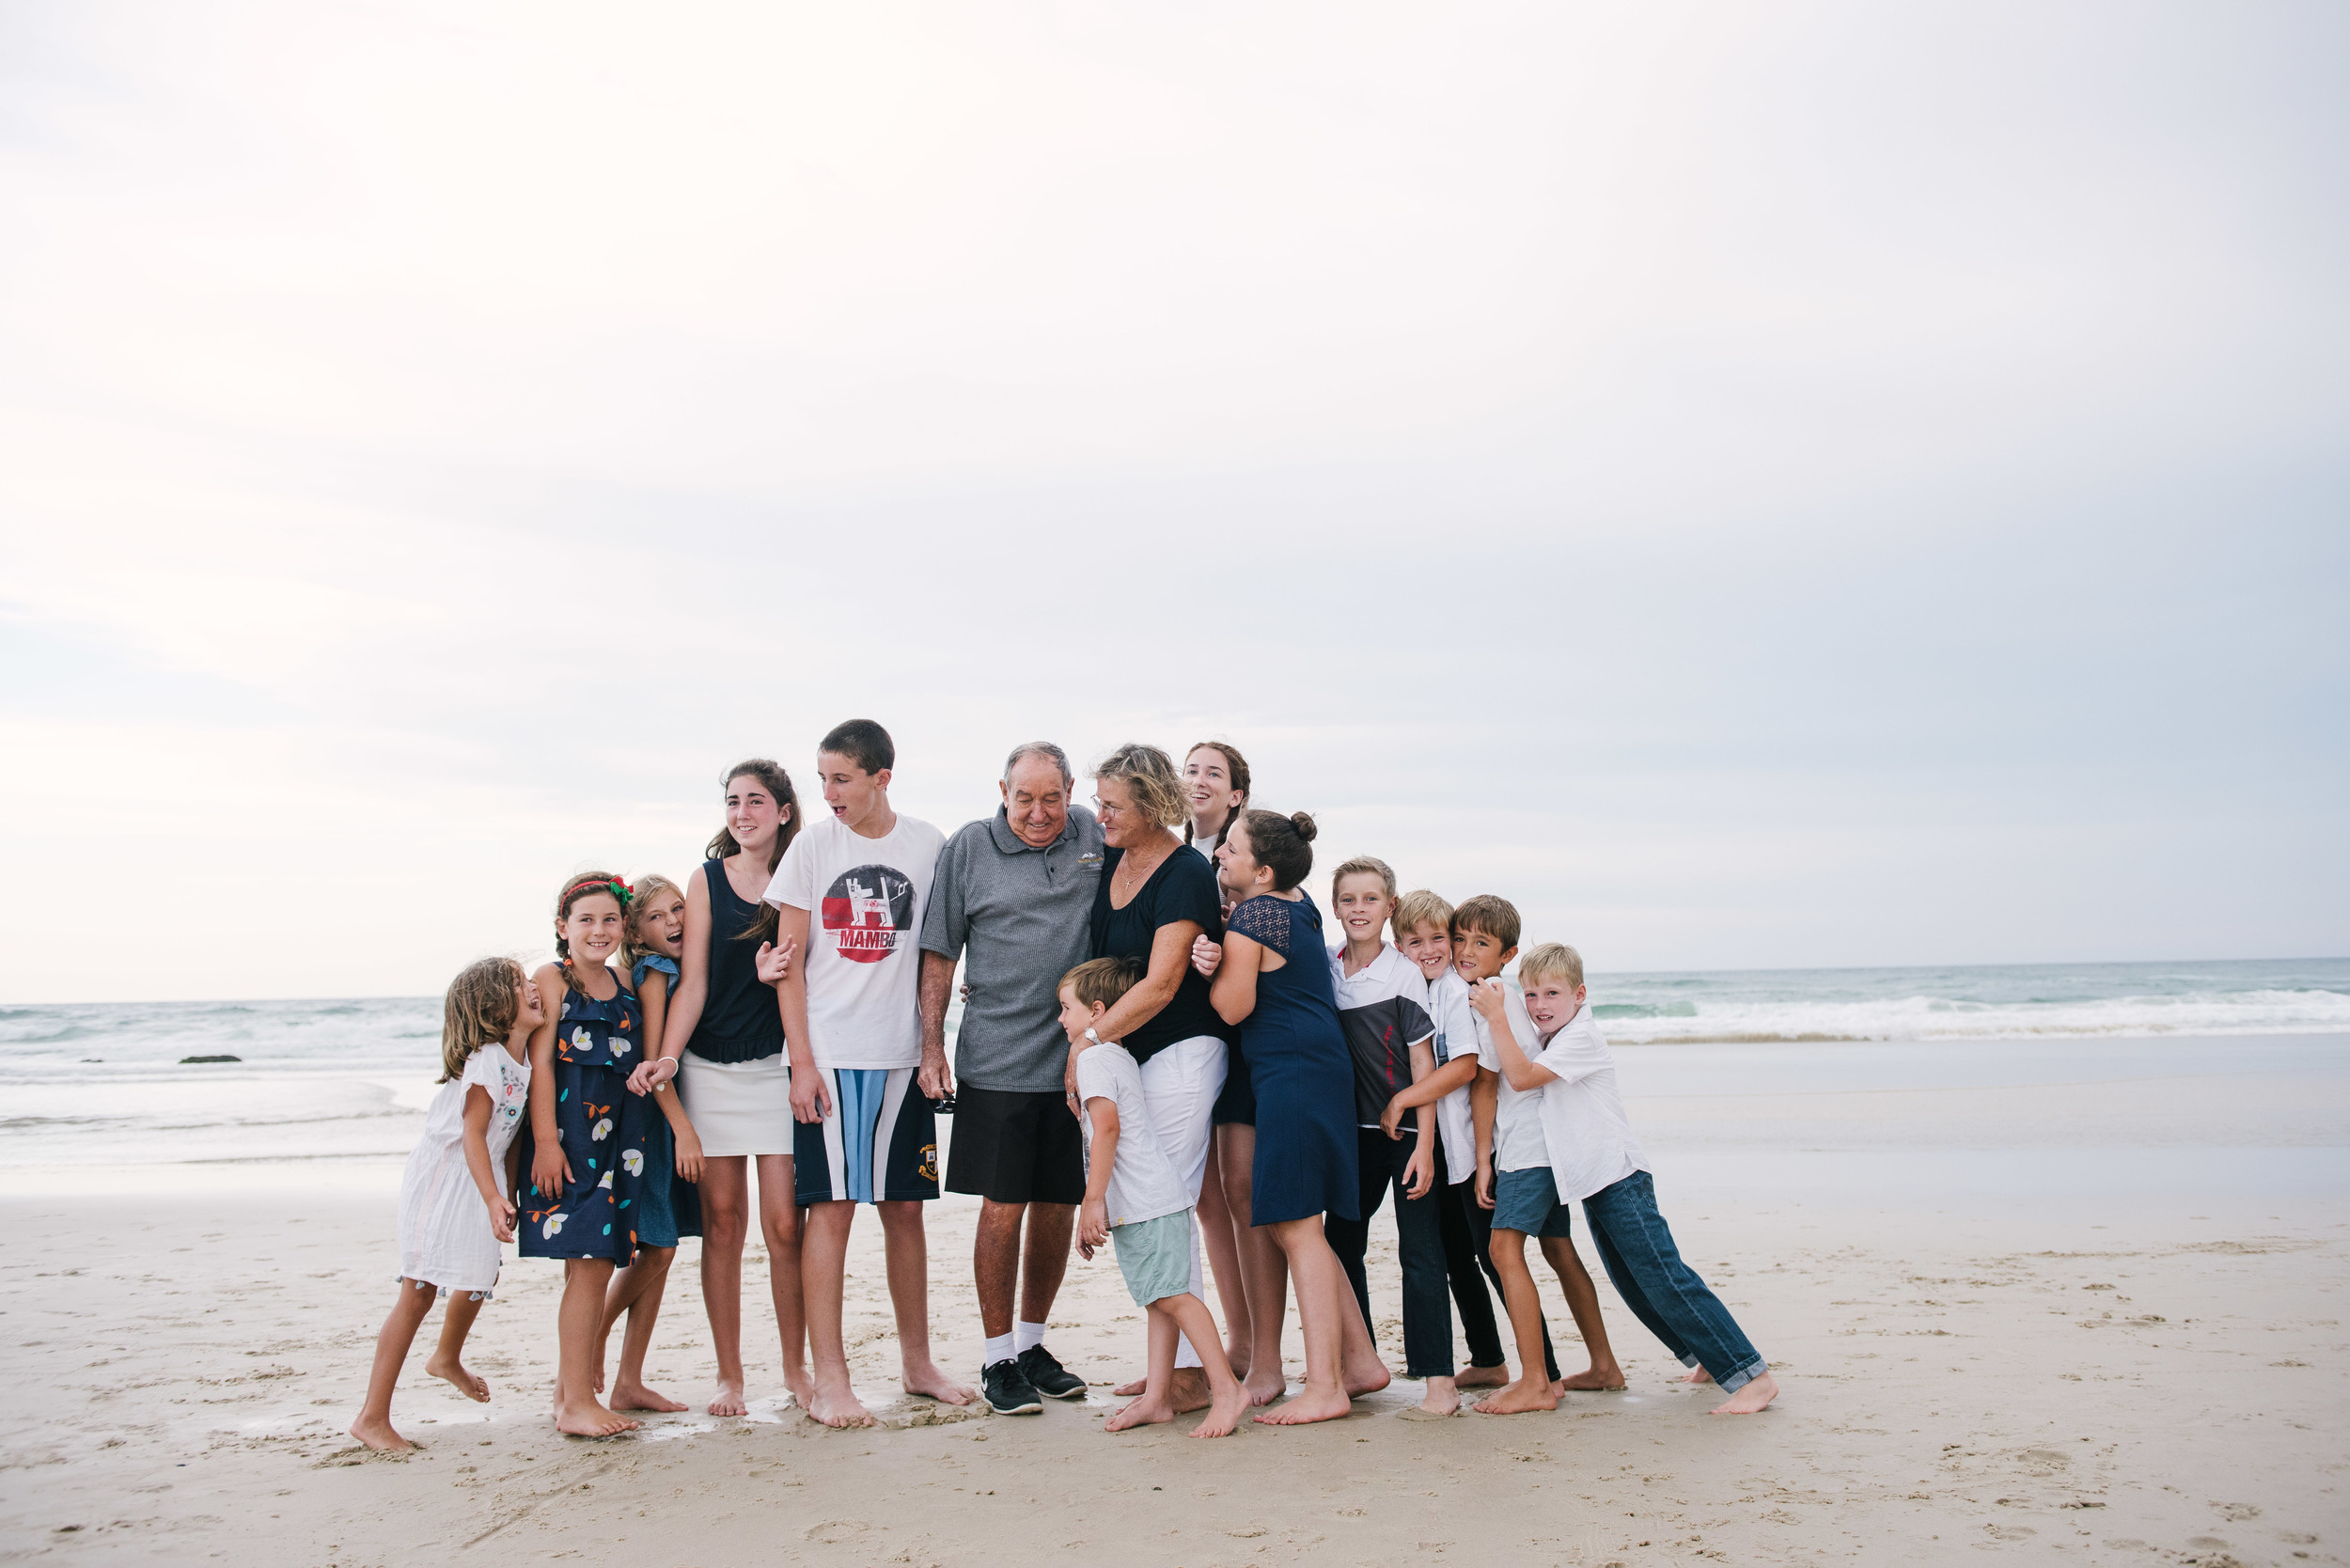 Ness family reunion-family-photography-wedding-photography-family-children-goldcoast-northernNSW-57.jpg